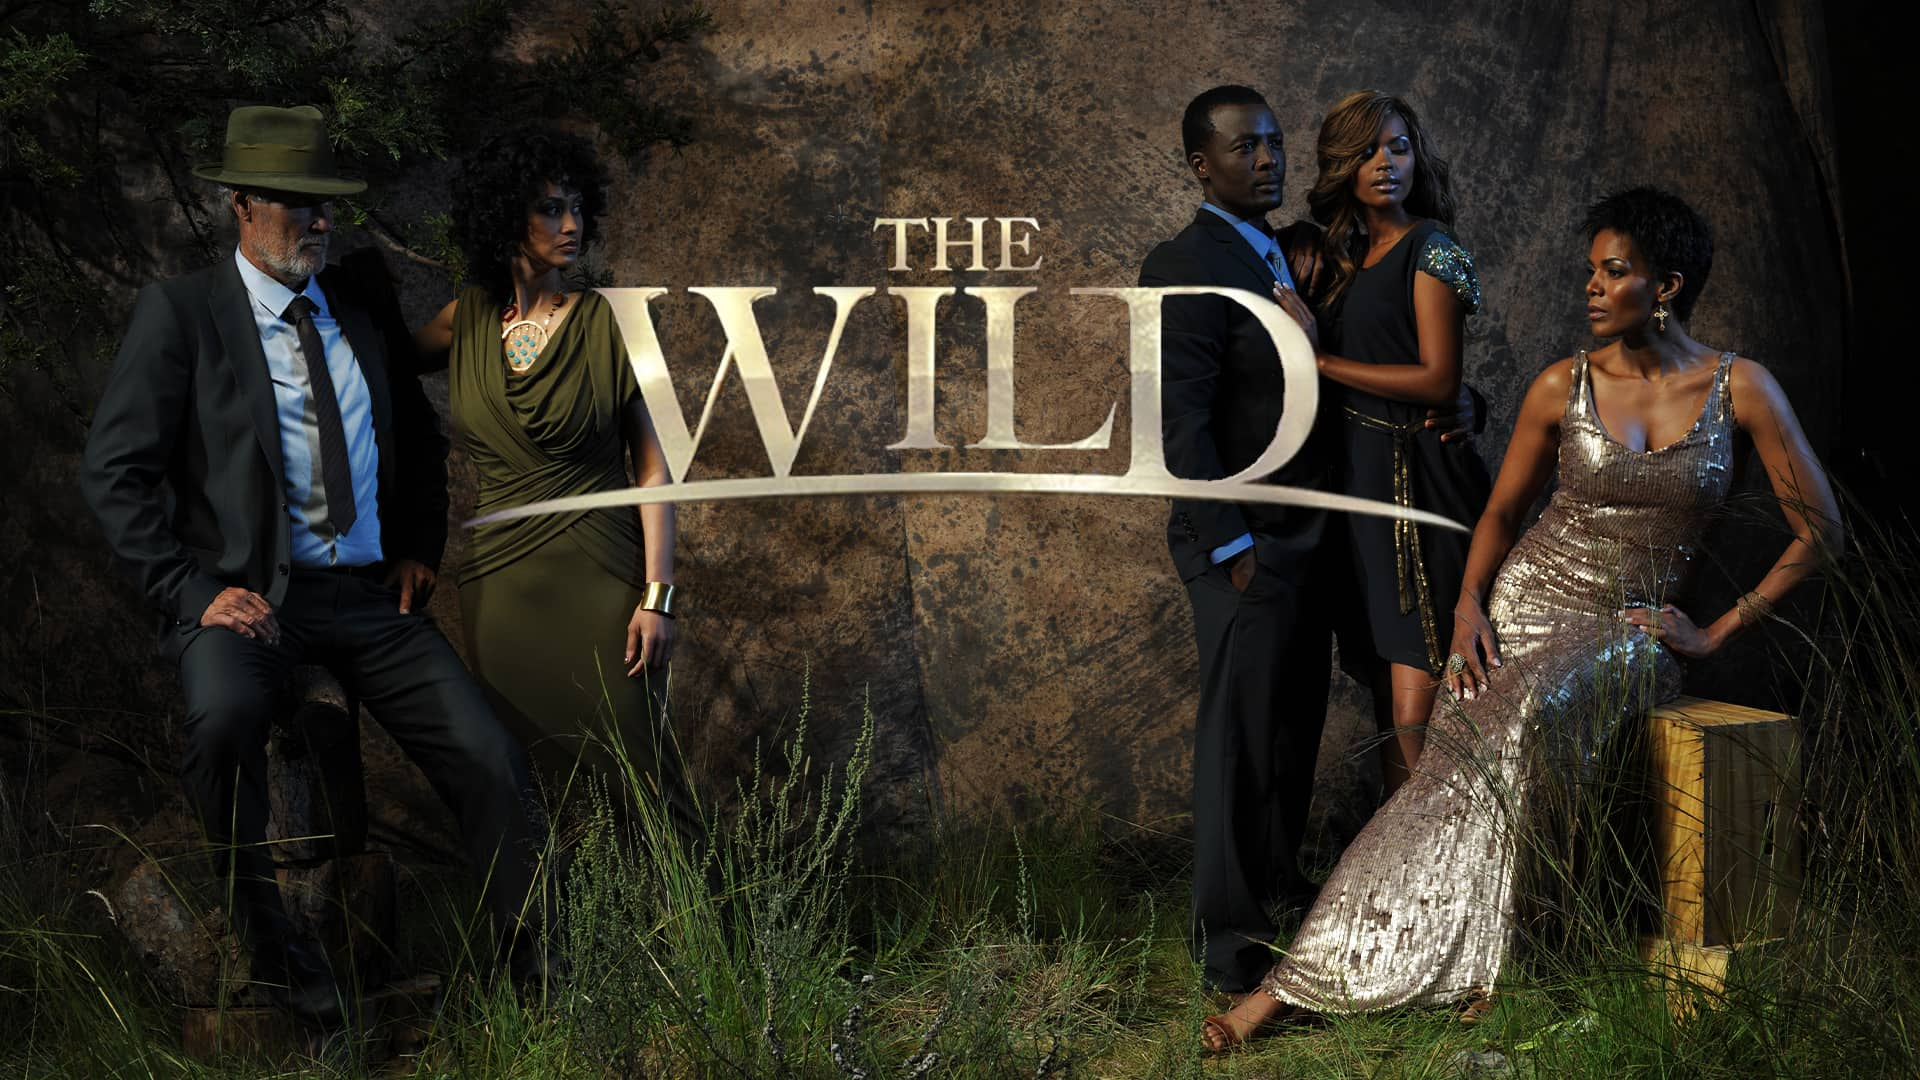 The Wild Poster 1920x1080 16x9